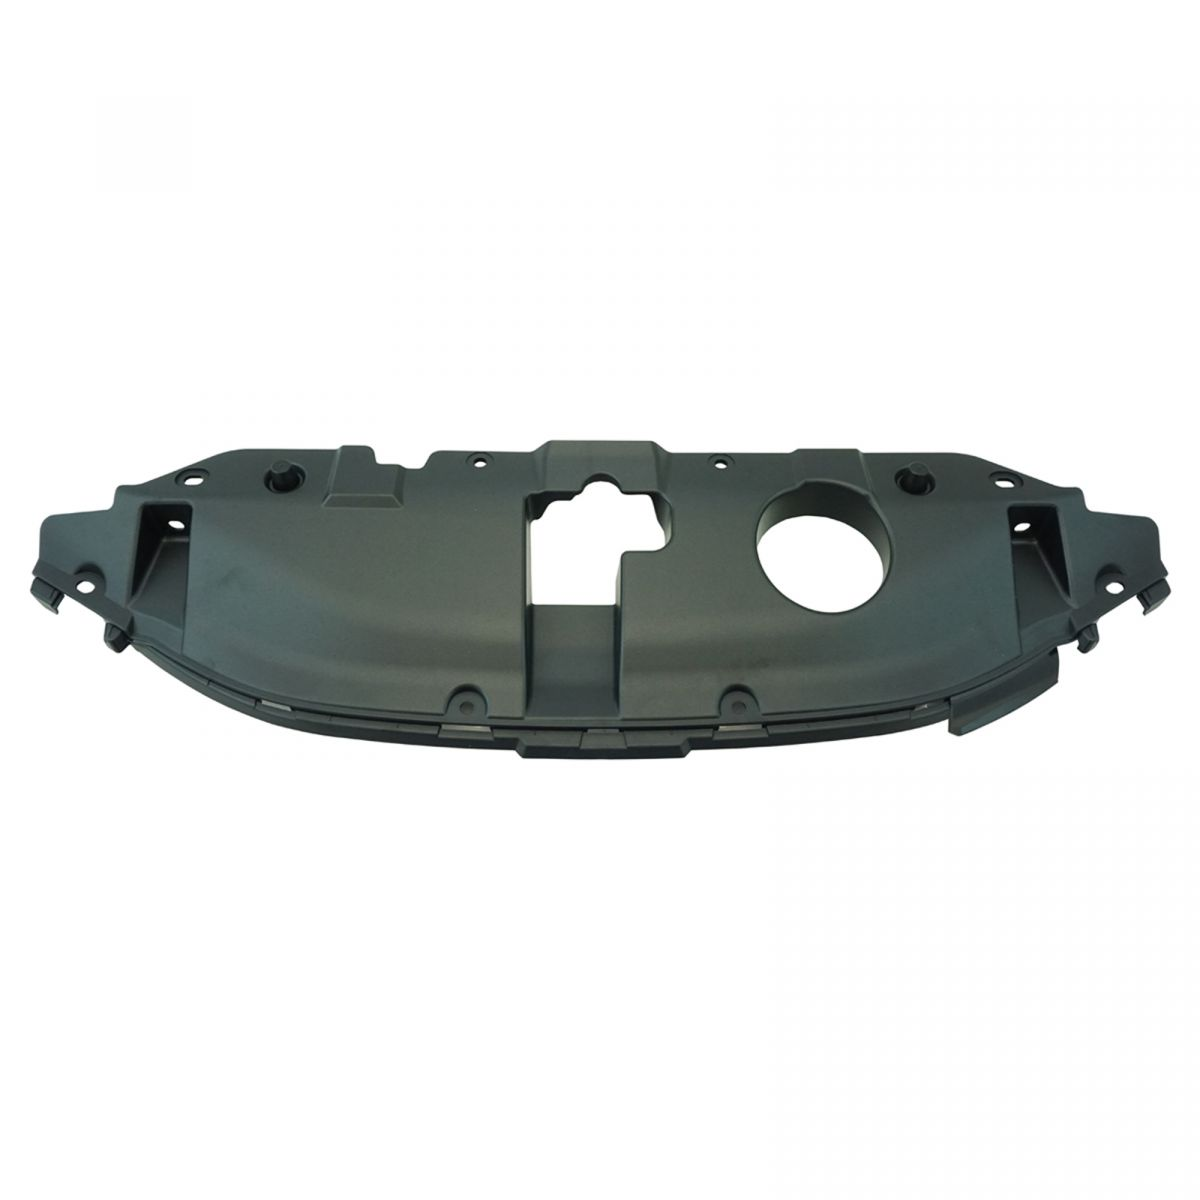 New Radiator Support Cover for Honda Civic HO1224102 2013 to 2014